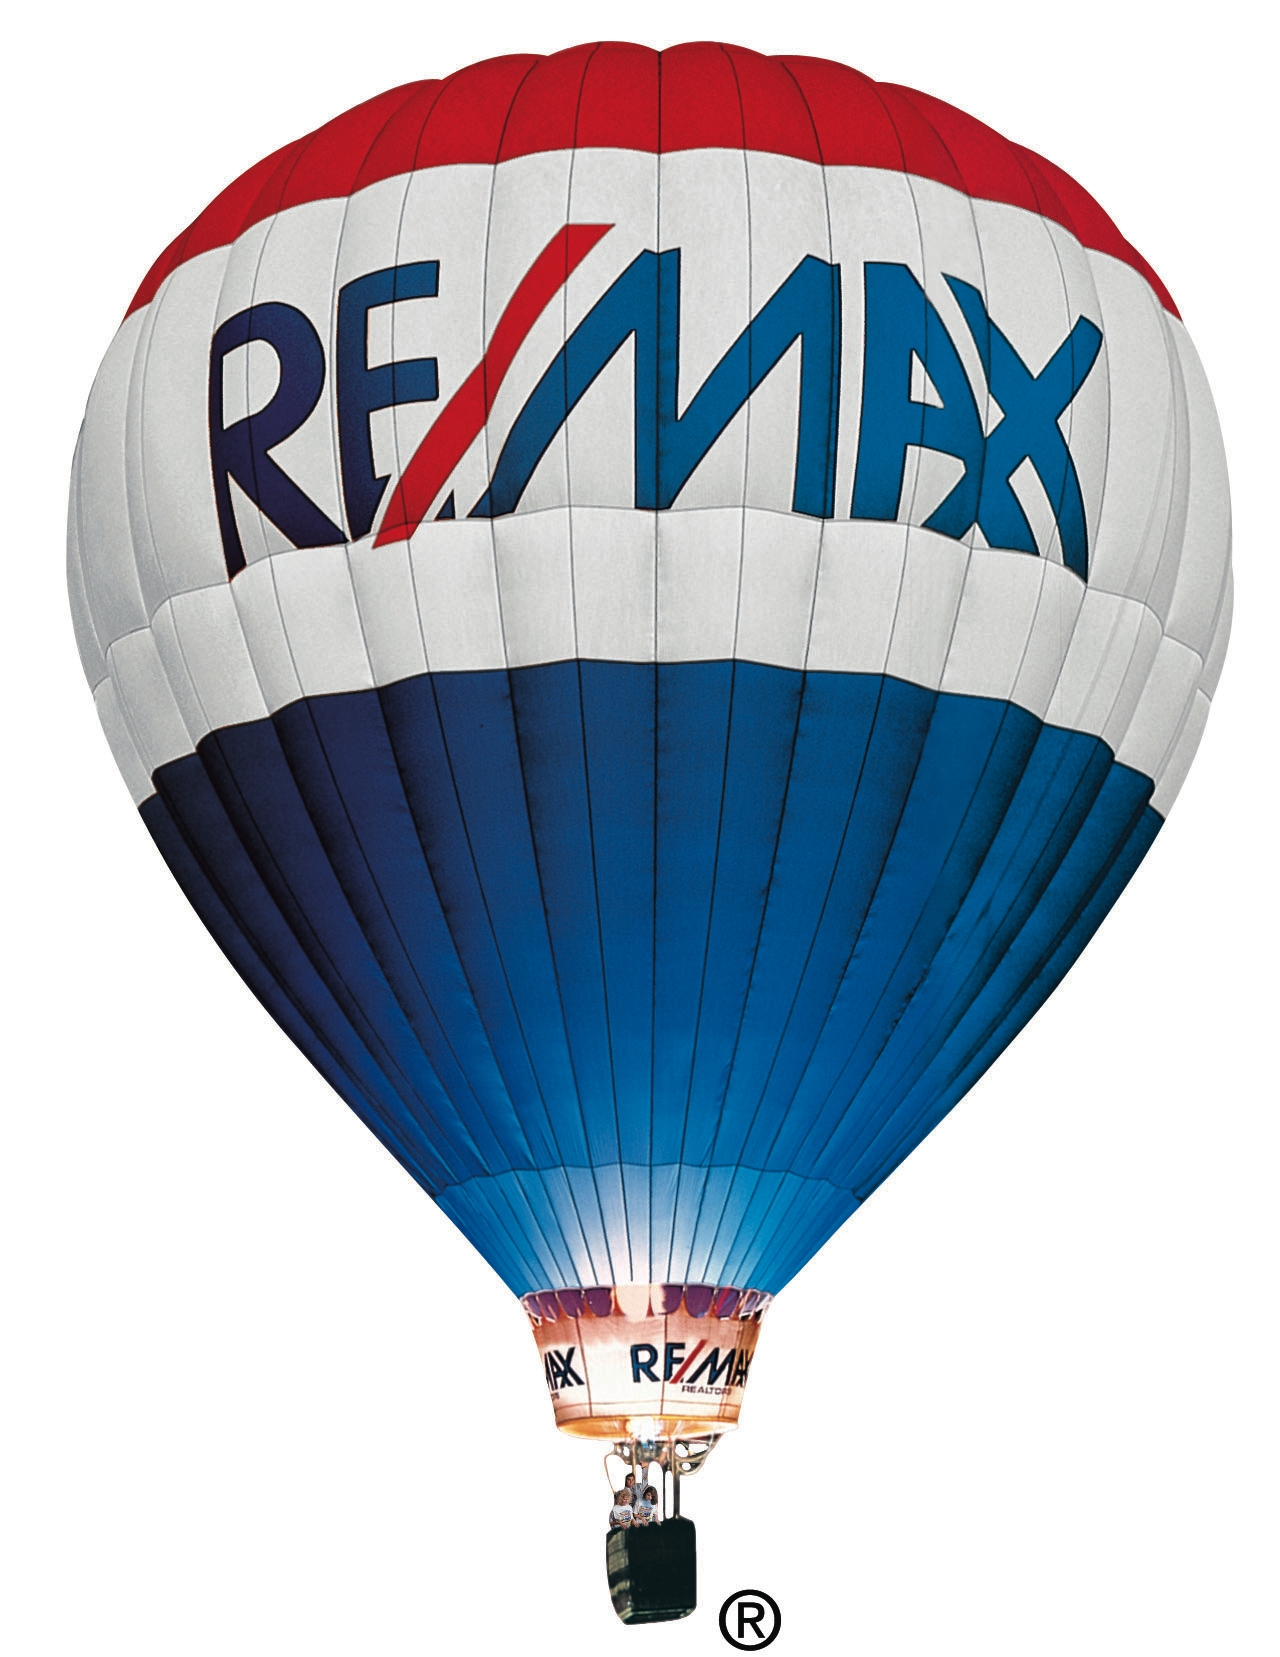 REMAX - Woodlands Custom Homes